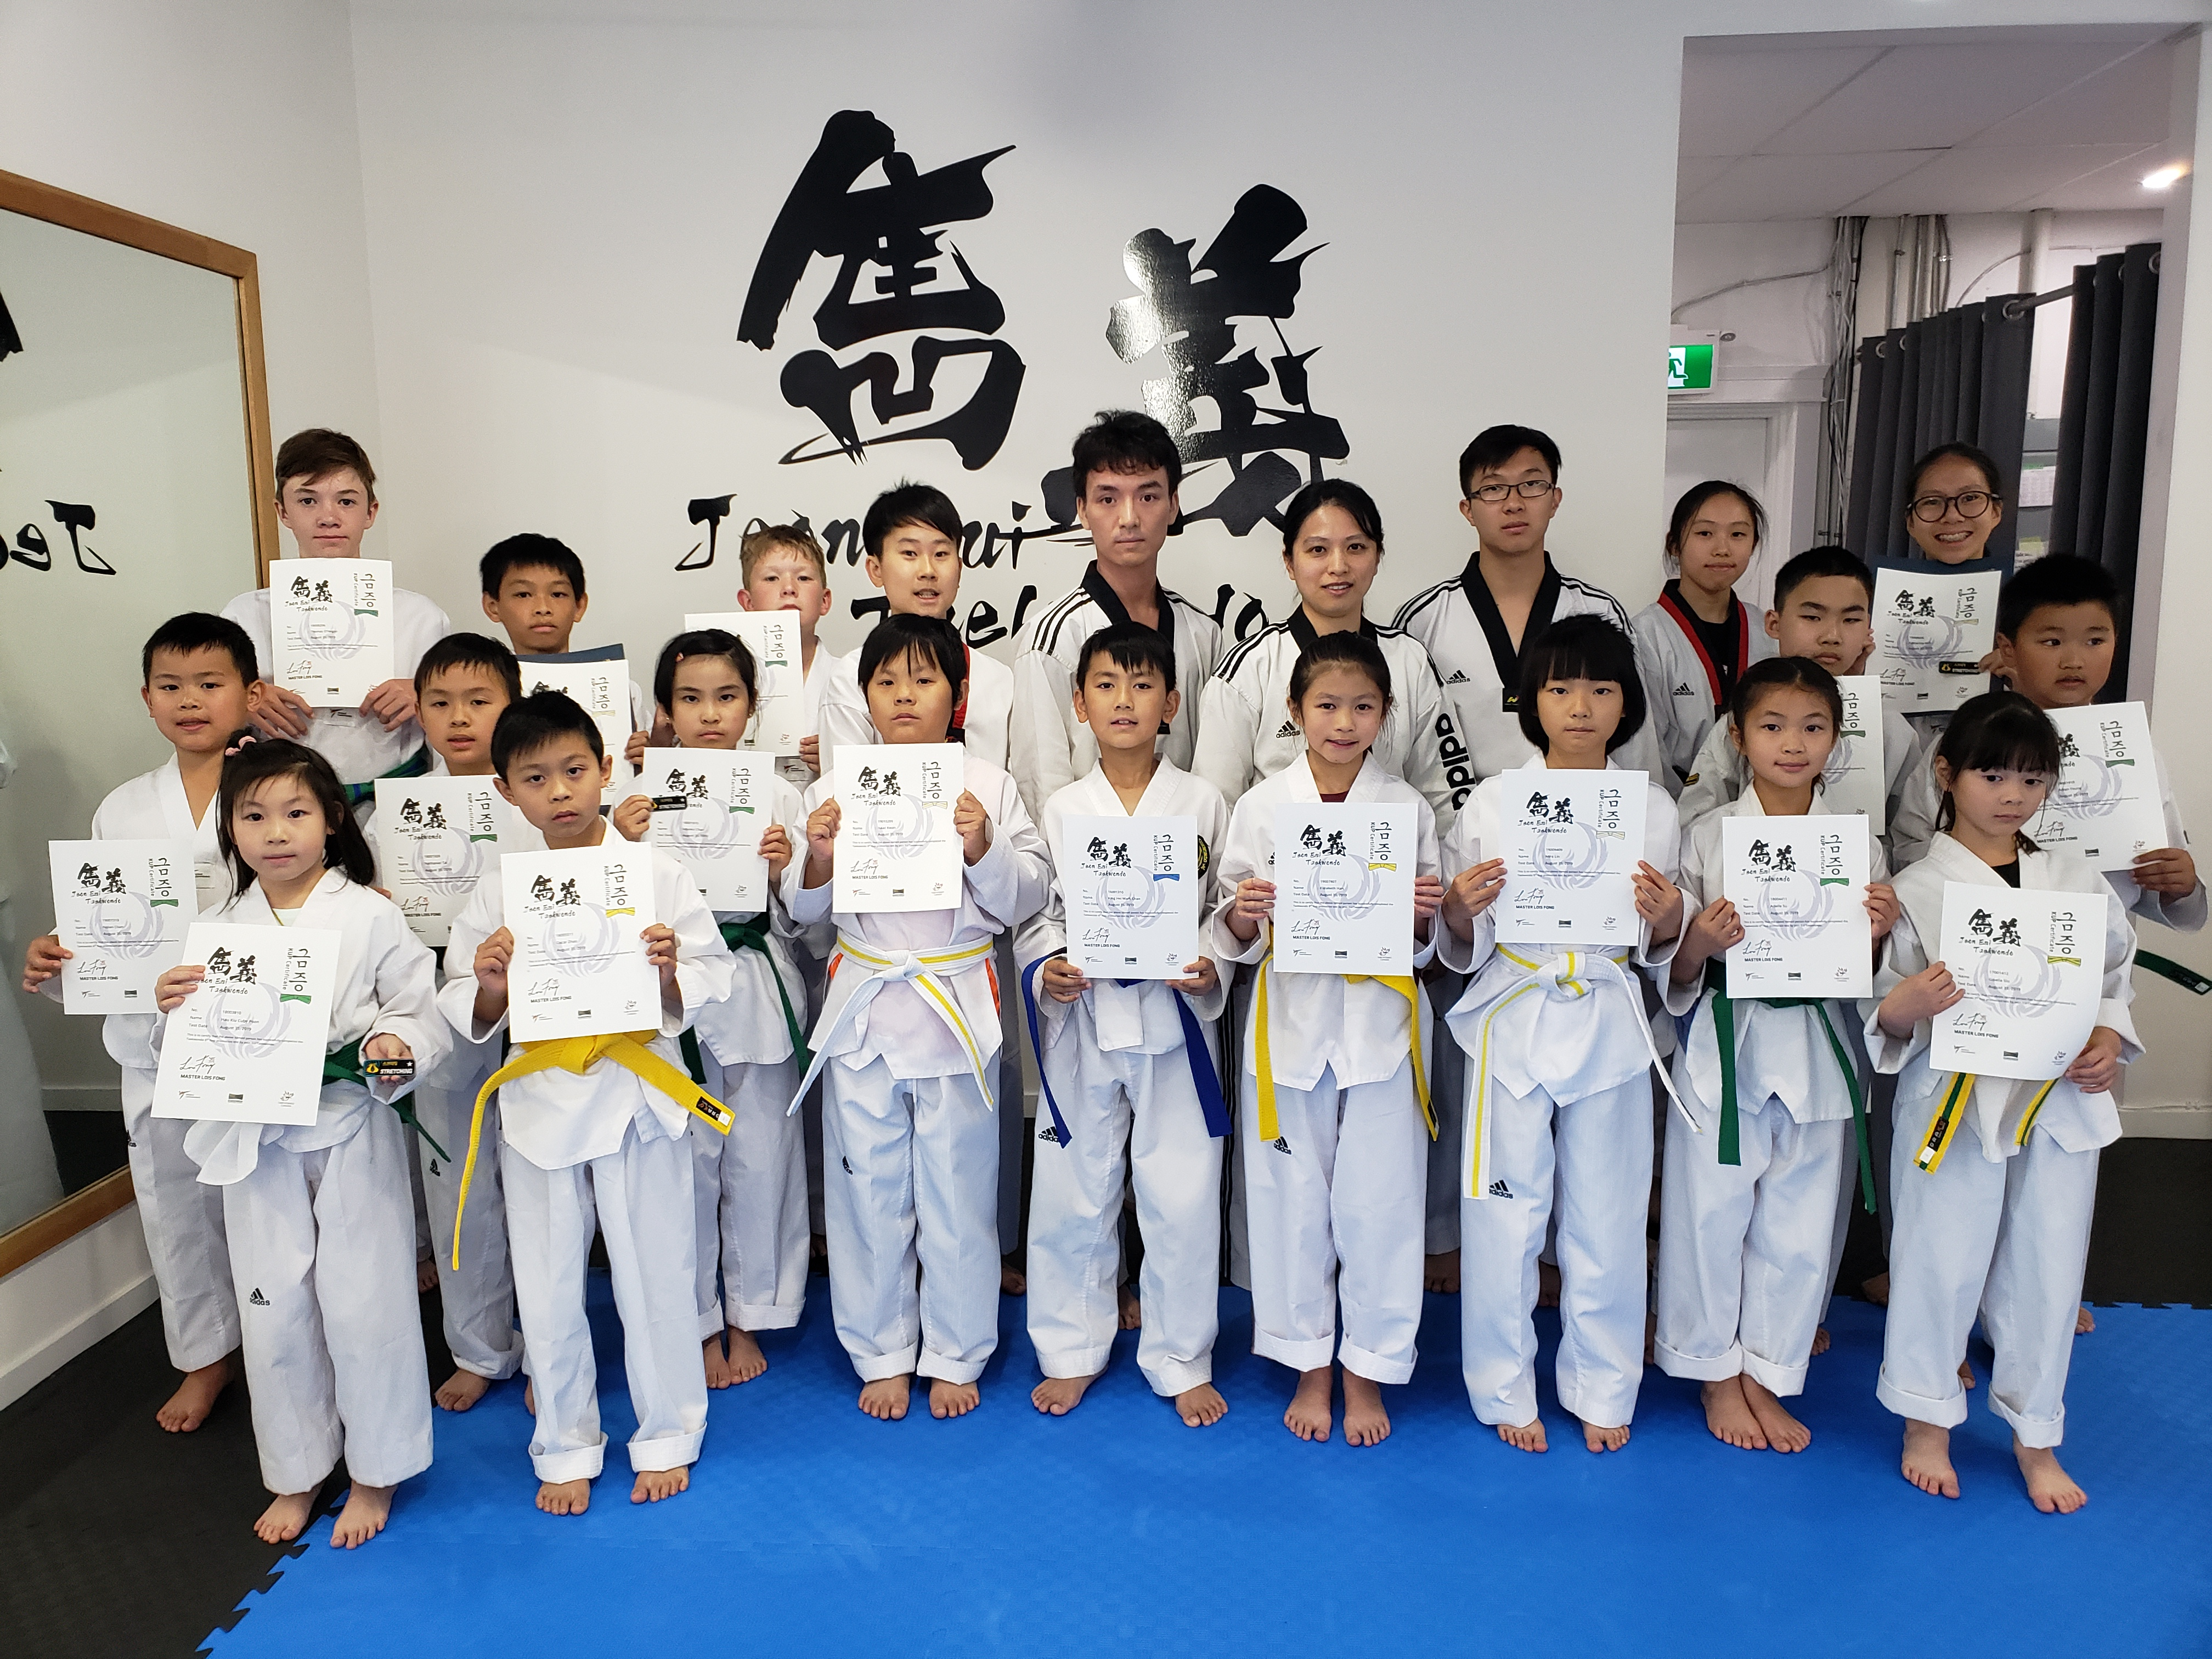 Promotion Test in August 2019